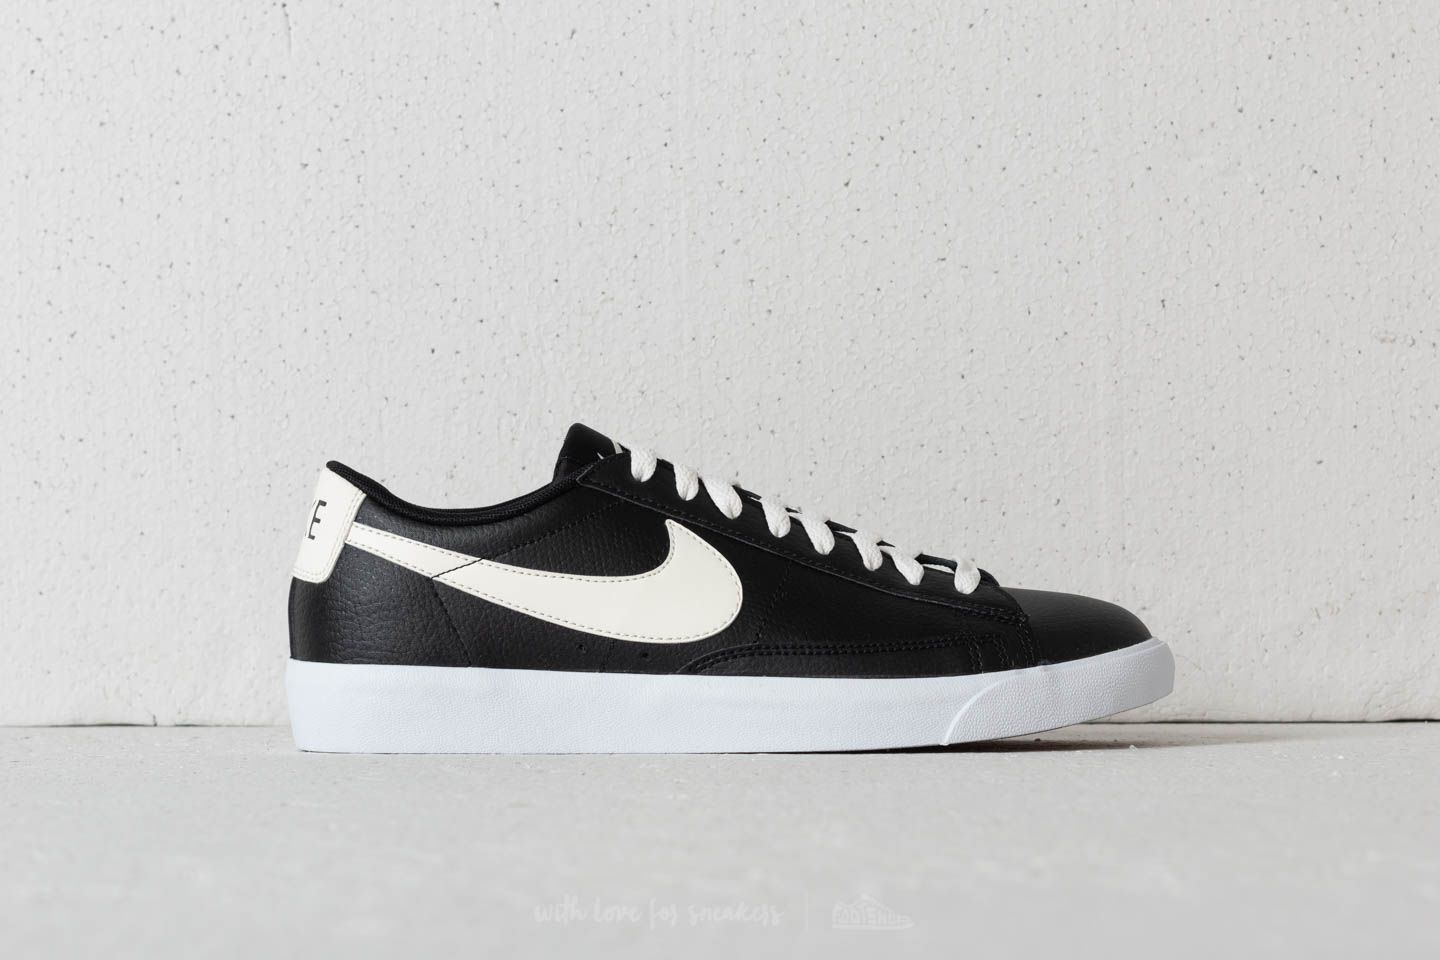 pretty nice c0082 6ee48 Nike Blazer Low Leather Black Sail-Gum Med Brown at a great price 88